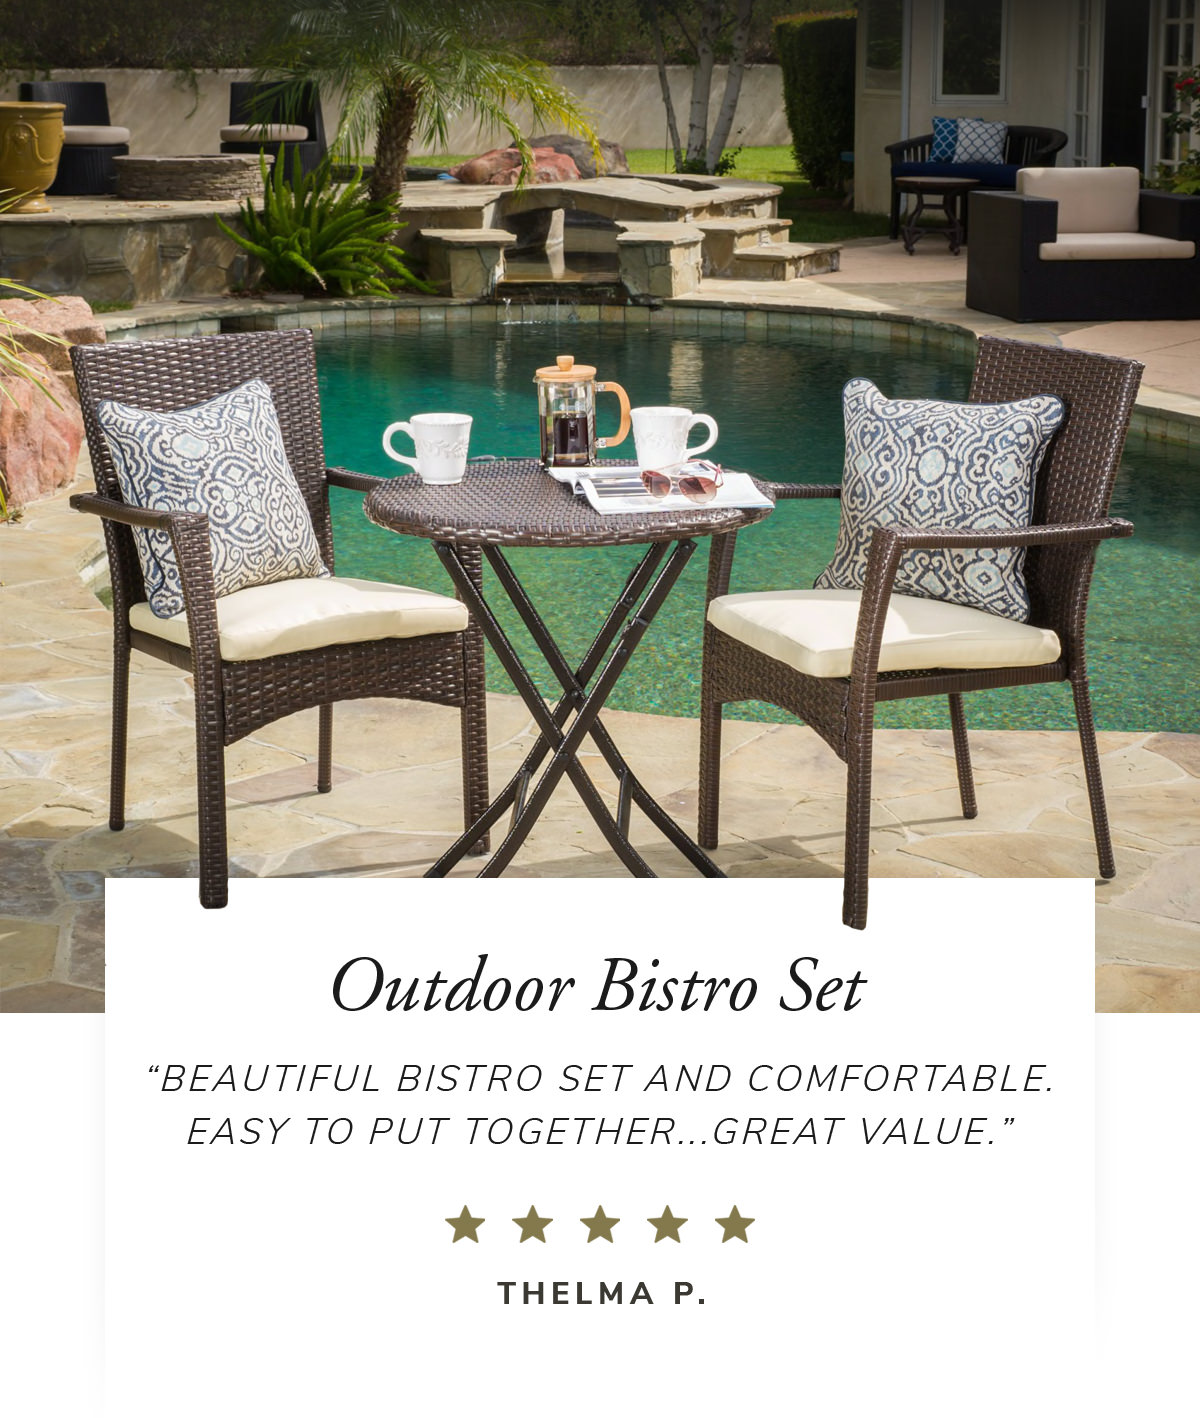 Outdoor Bistro Set. 'Beautiful bistro set and comfortable. Easy to put together...great value!' | SHOP NOW